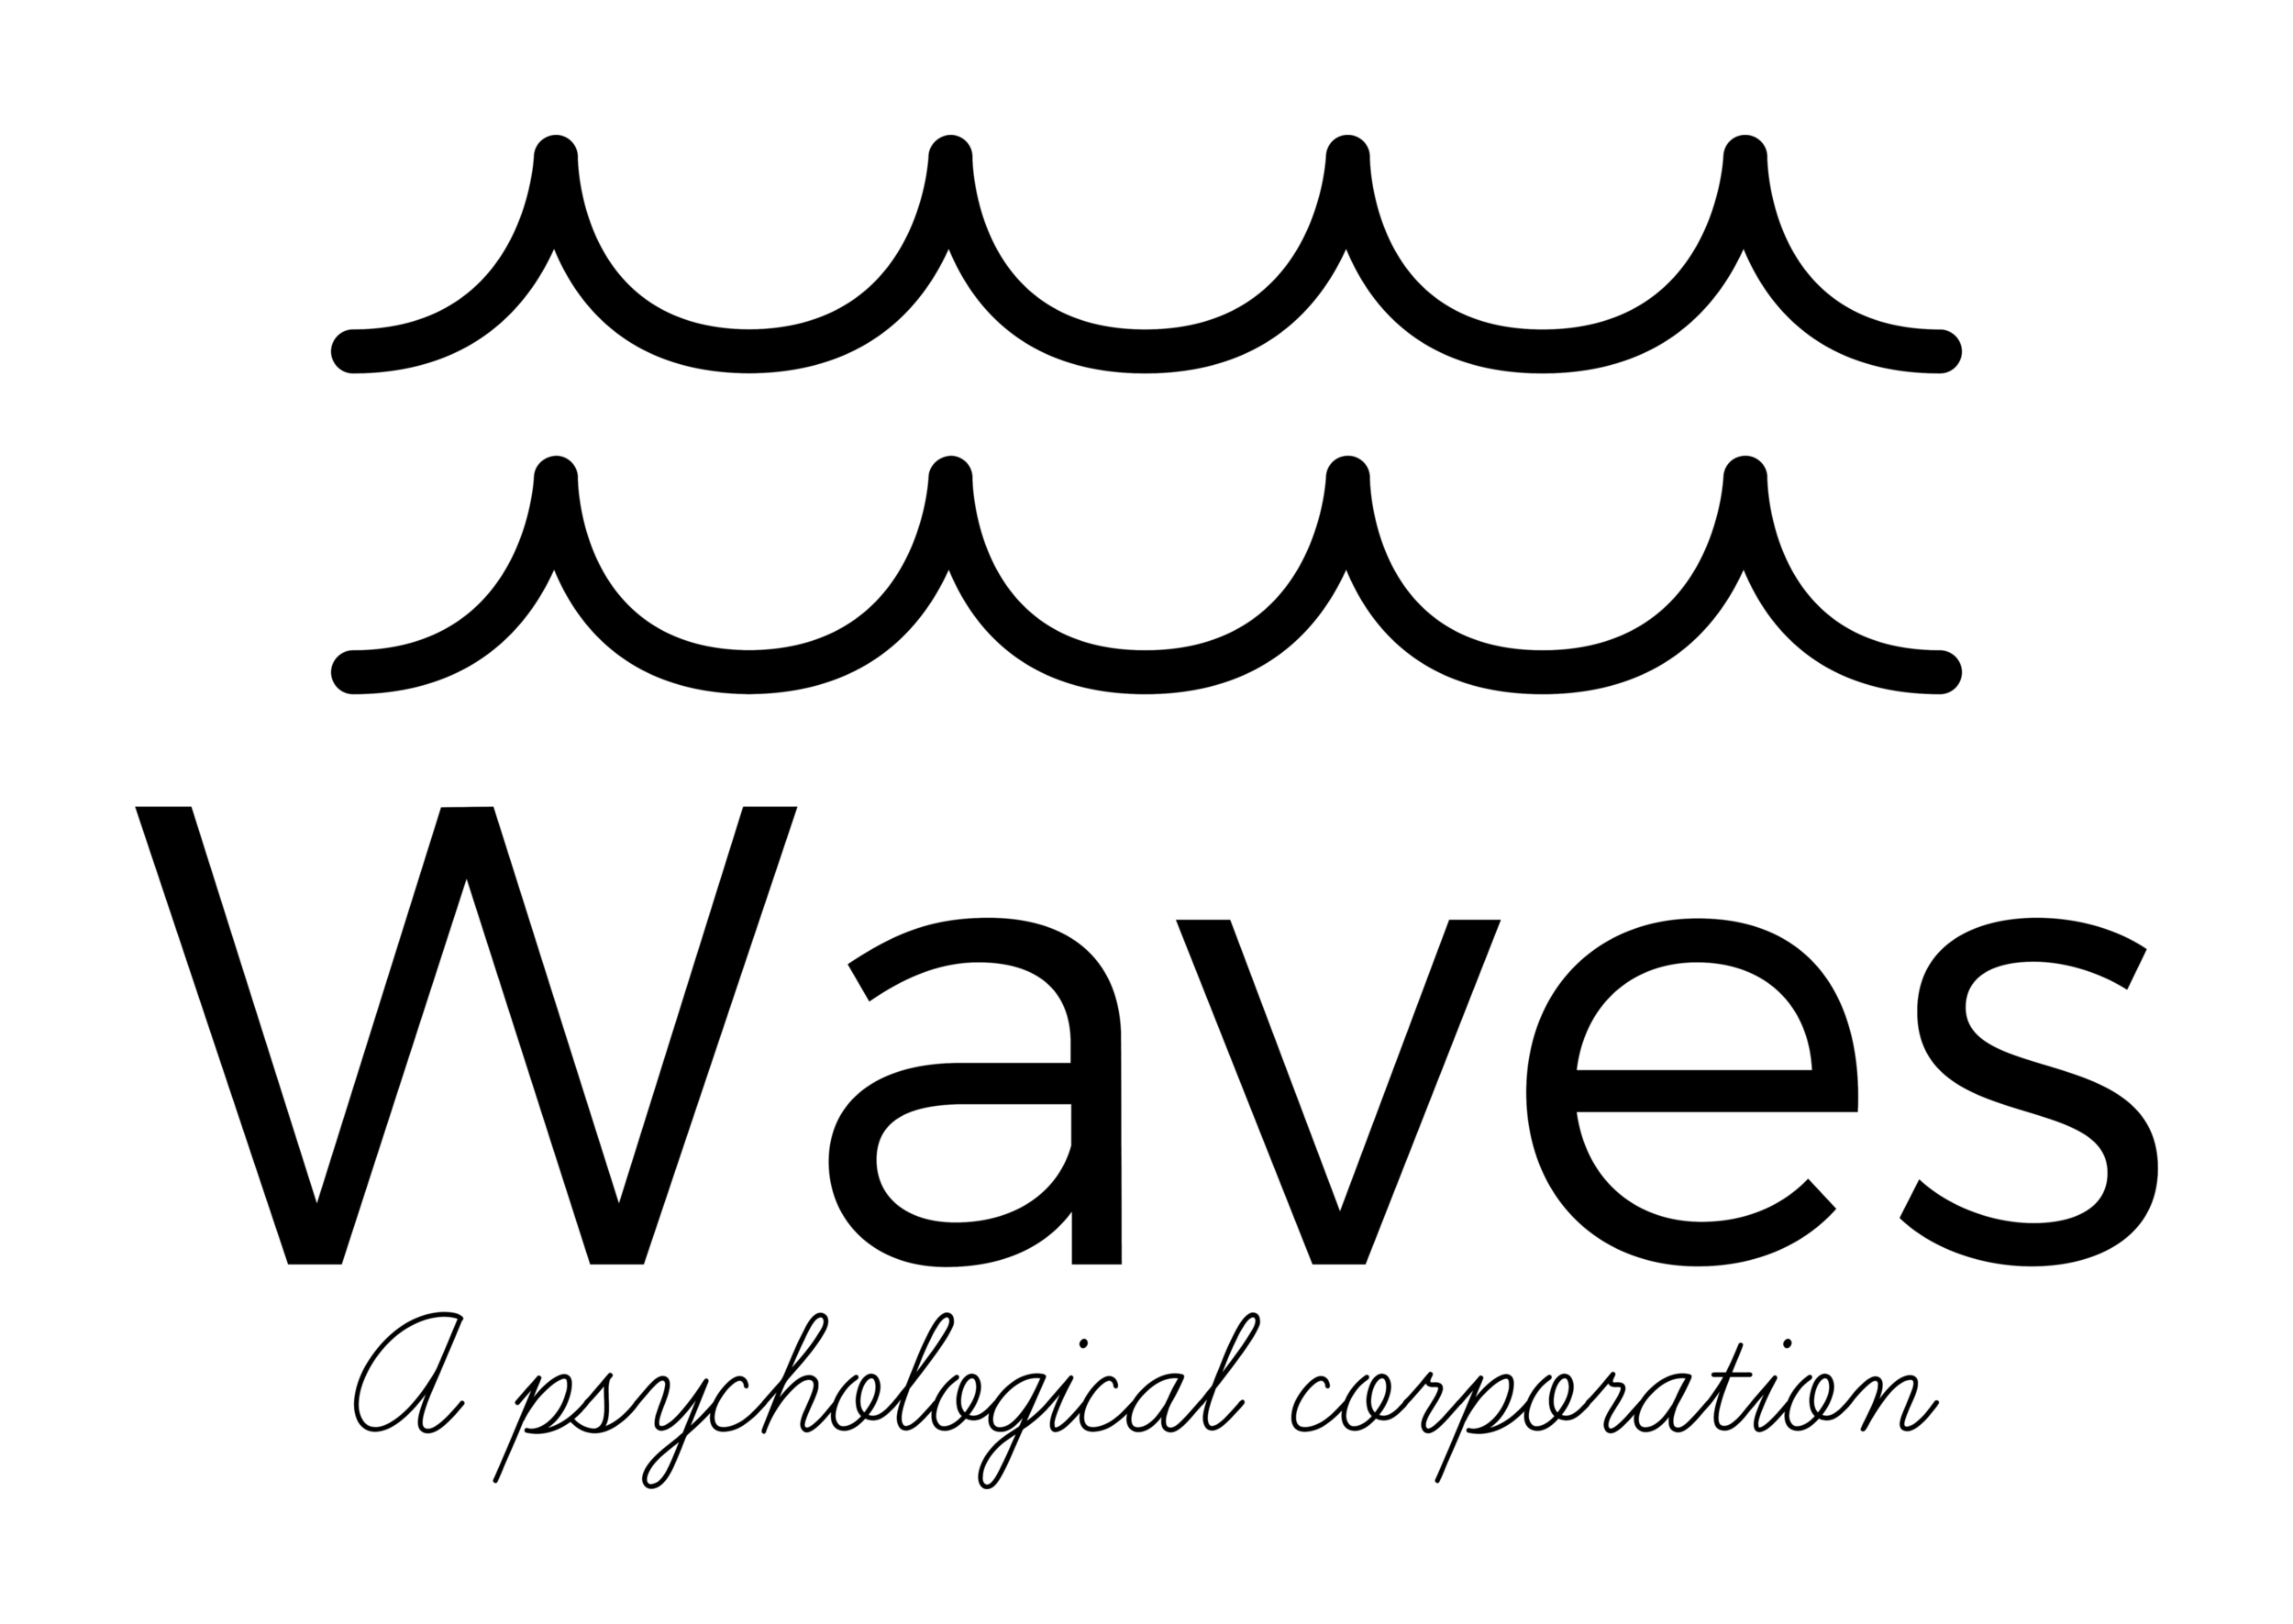 The logo of Waves, A Psychological Corporation in black complete with ocean waves on the top of text.